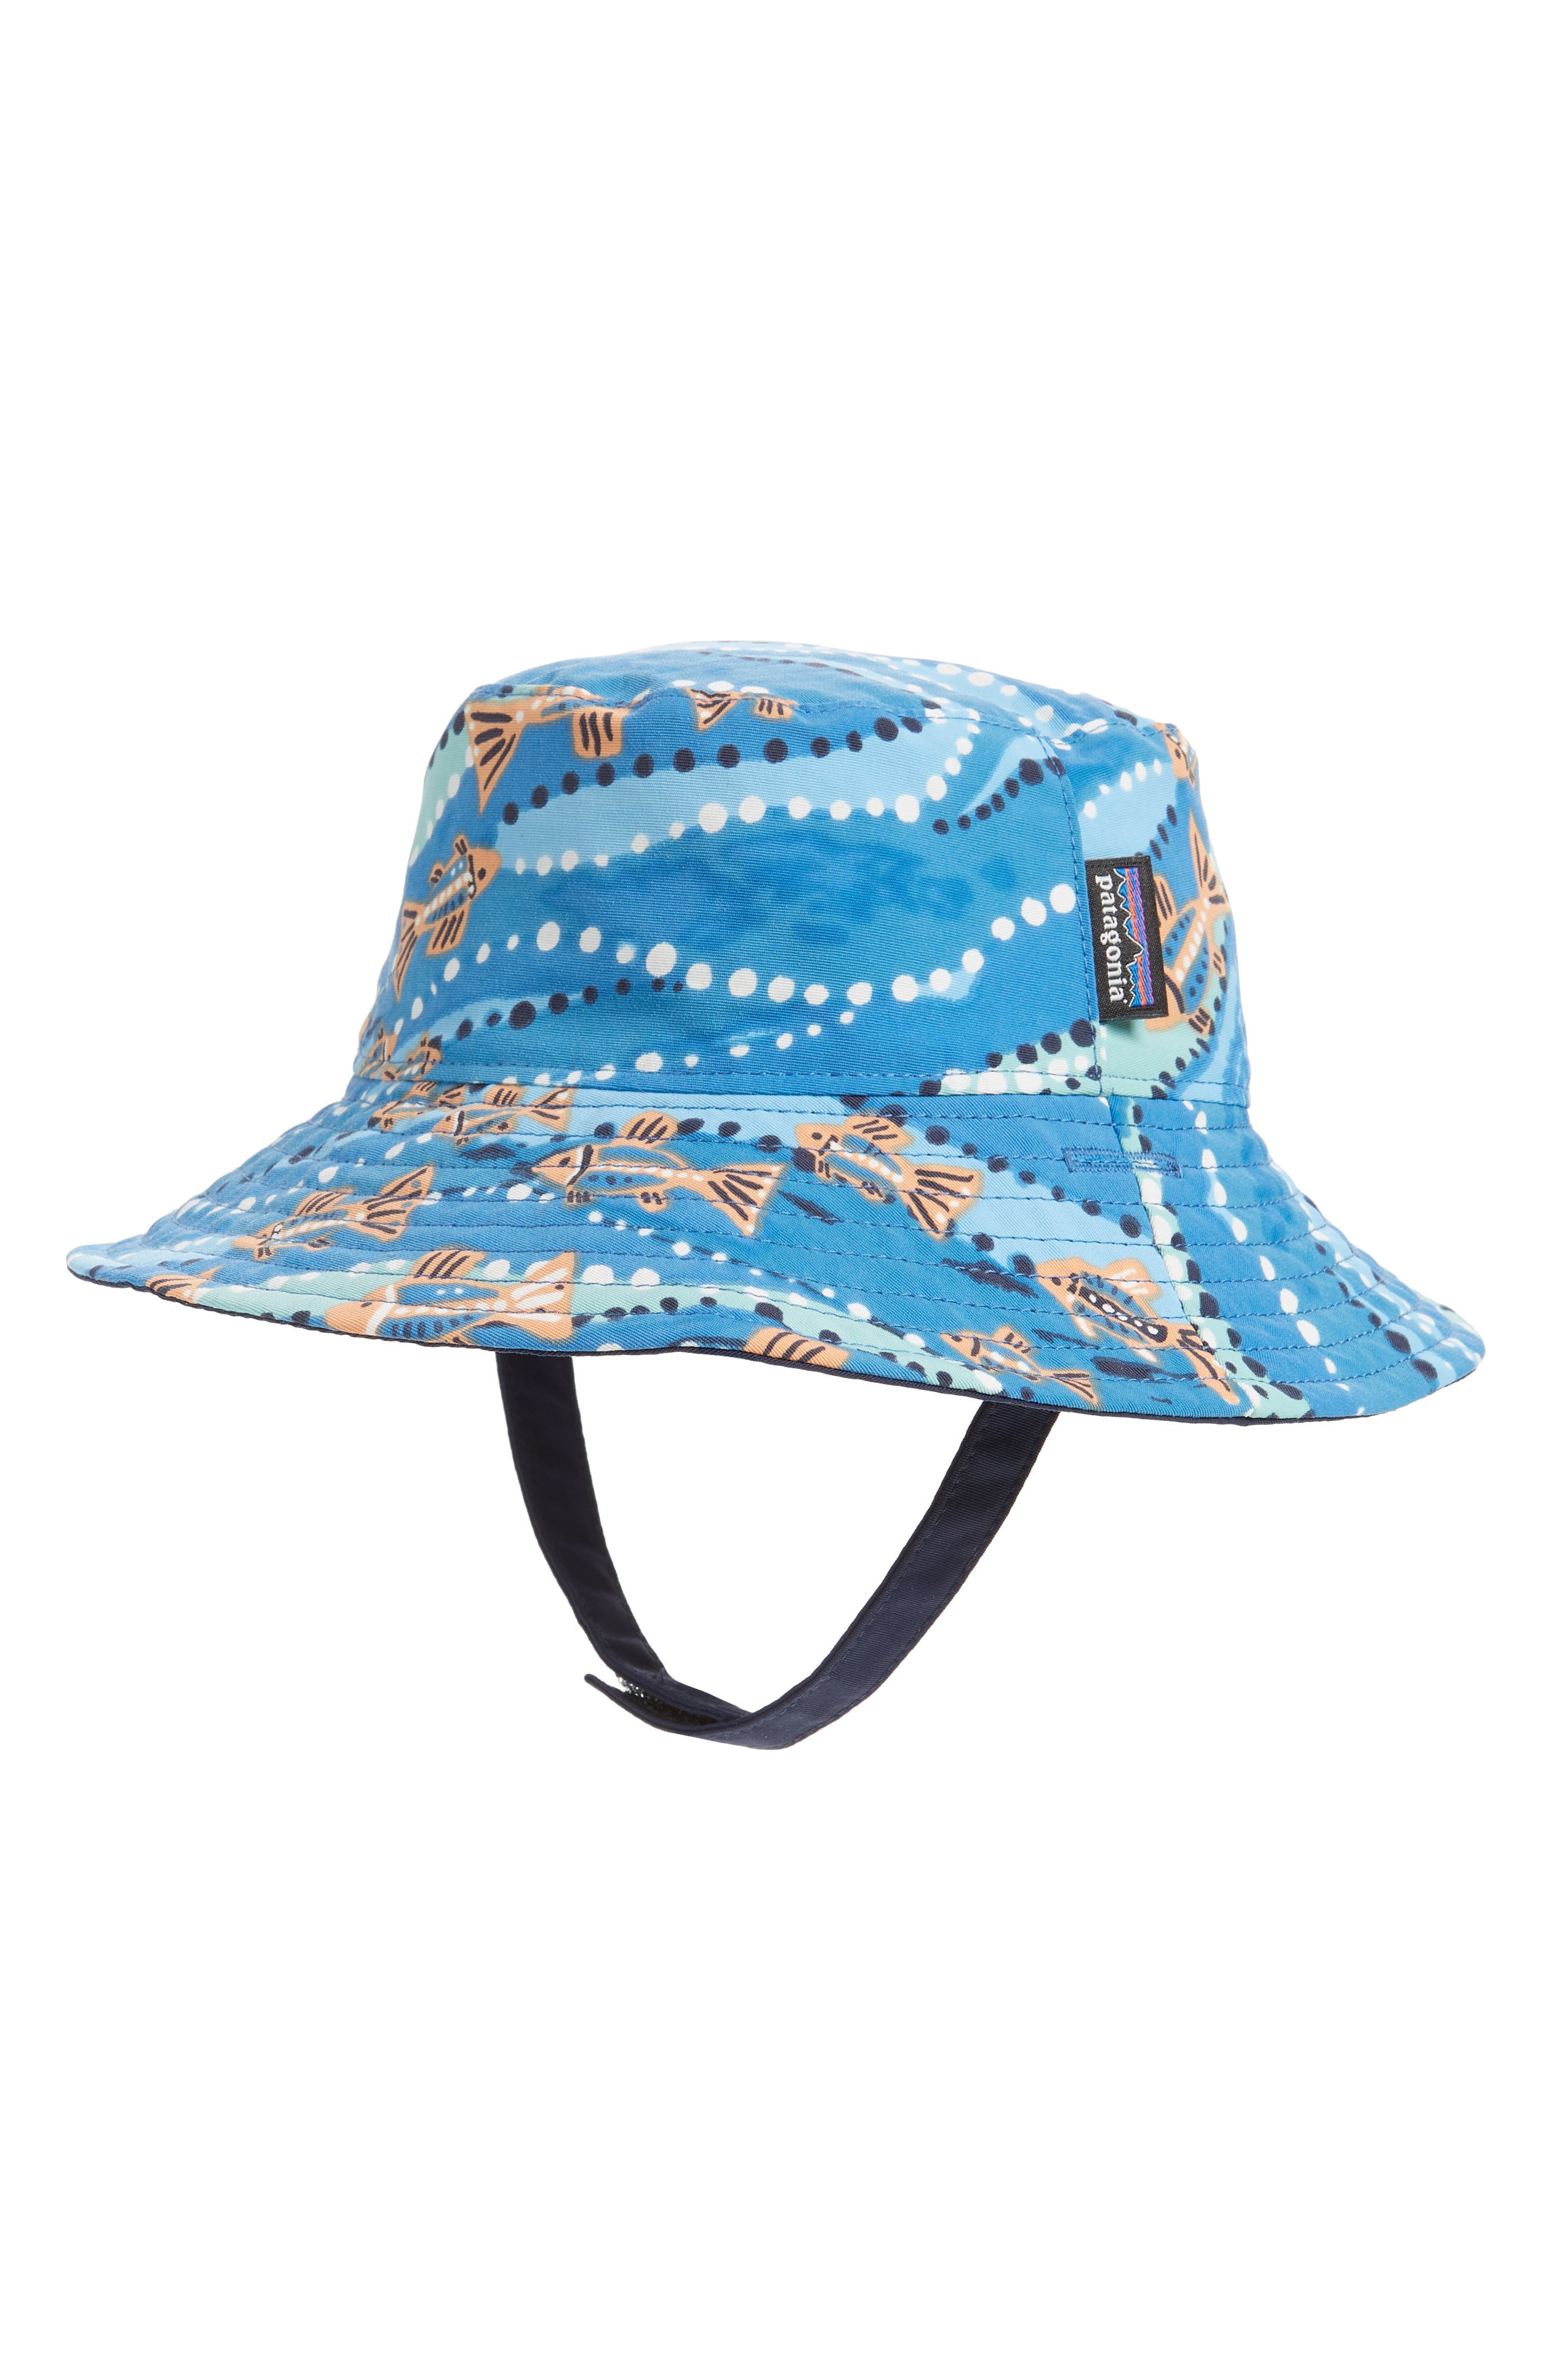 PATAGONIA Bucket Hat, Main, color, BELL BAY/ PORT BLUE